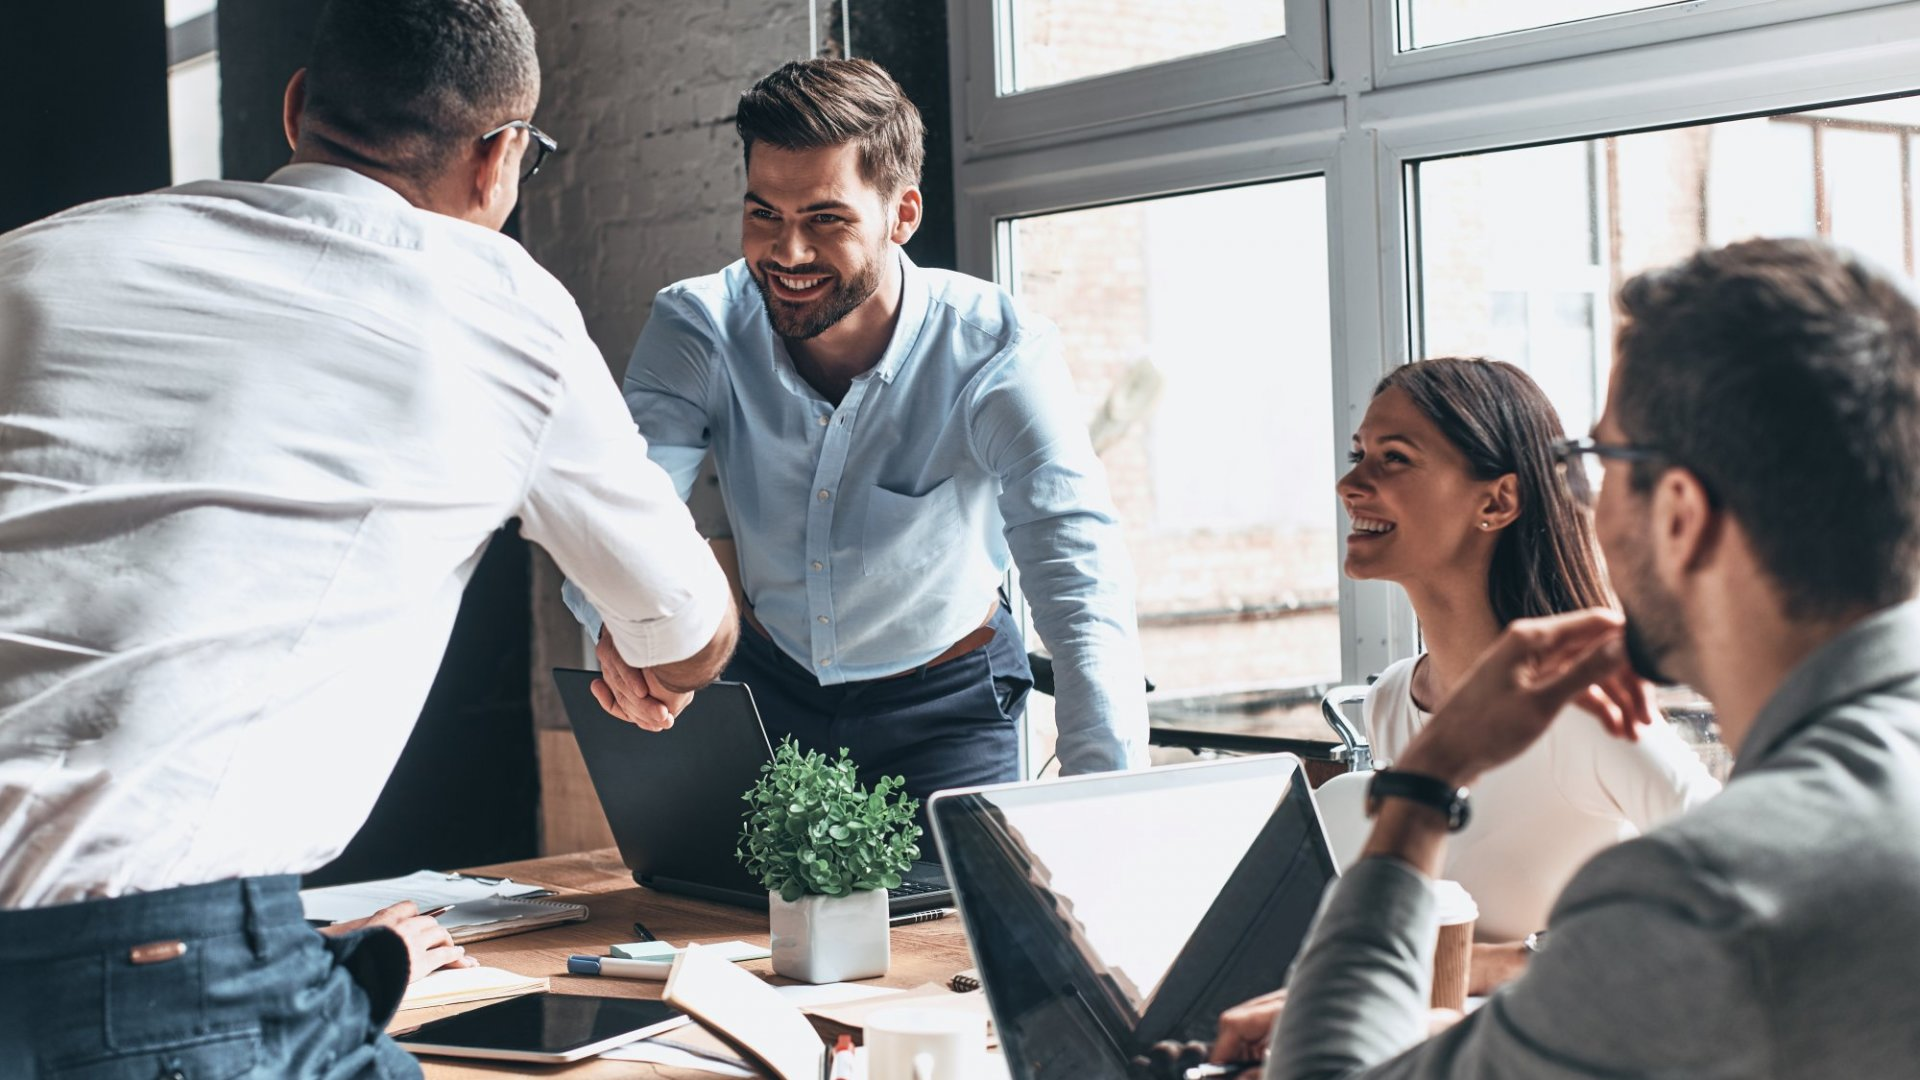 How to Build an Honest Relationship With New Employees